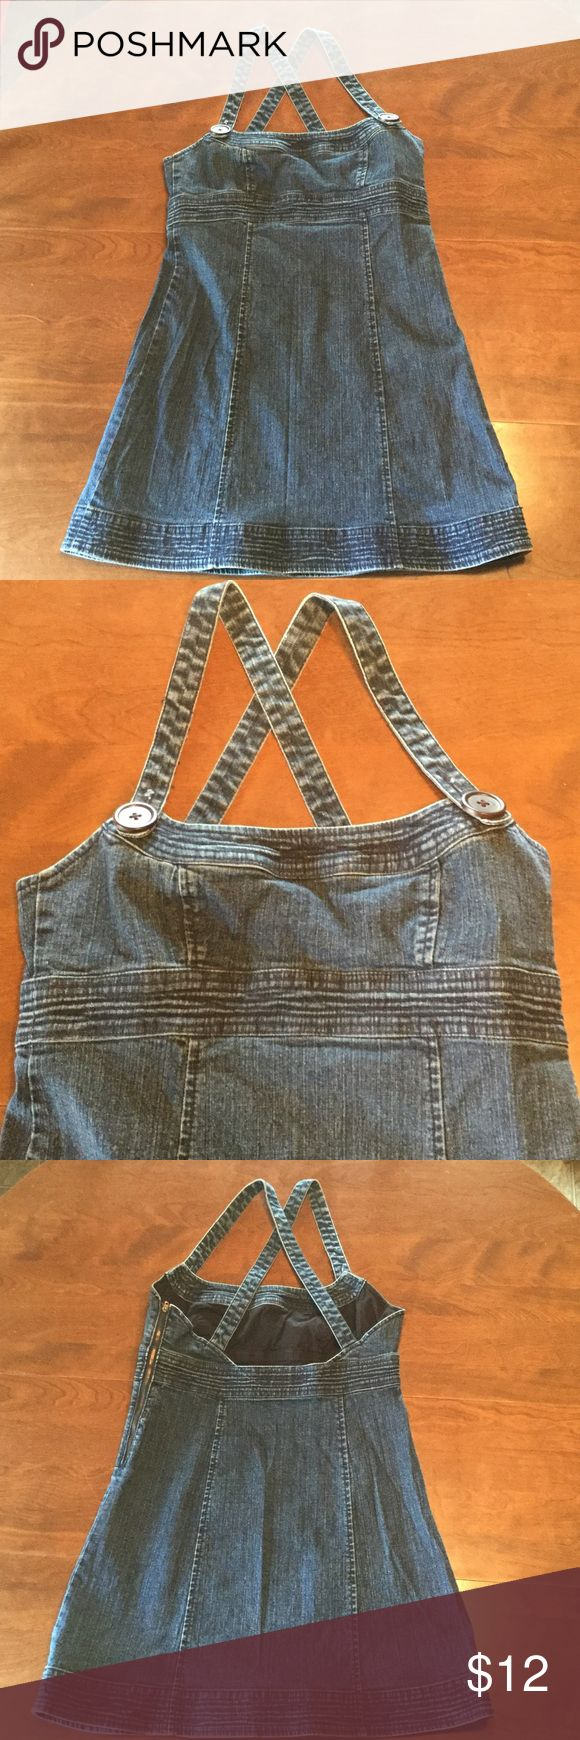 Denim Mini Dress Denim Mini Dress. Cross back straps that button on front. Zipper closure on left side. Slight stretch in band under chest. Short. Size 5. Rewind Dresses Mini